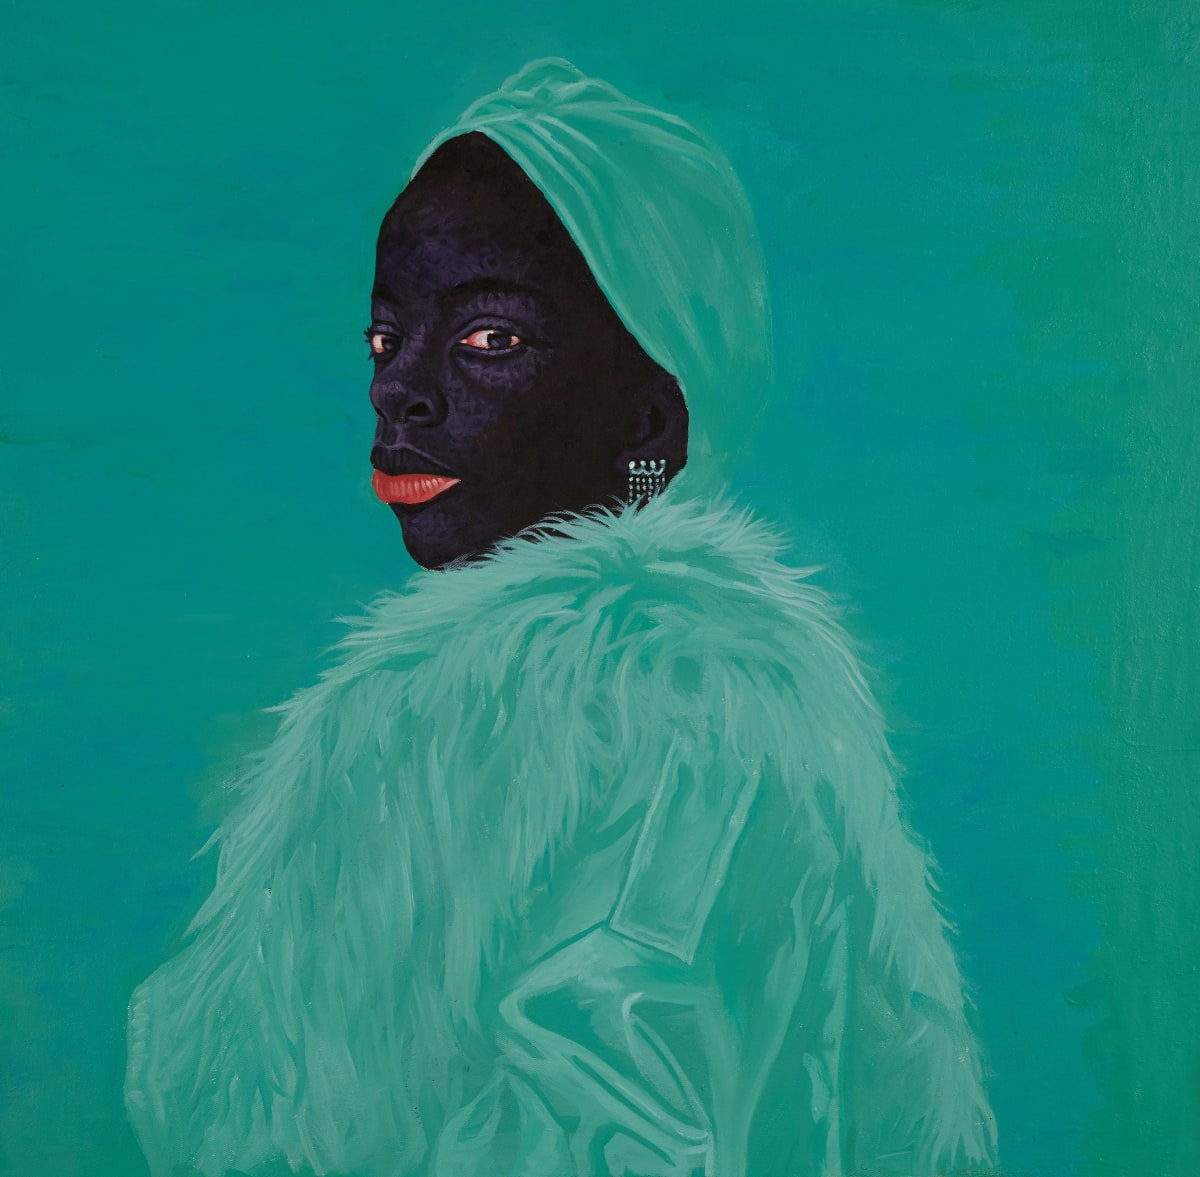 For Ghanaian Portraitist Kwesi Botchway, Fashion and Power Go Hand in Hand